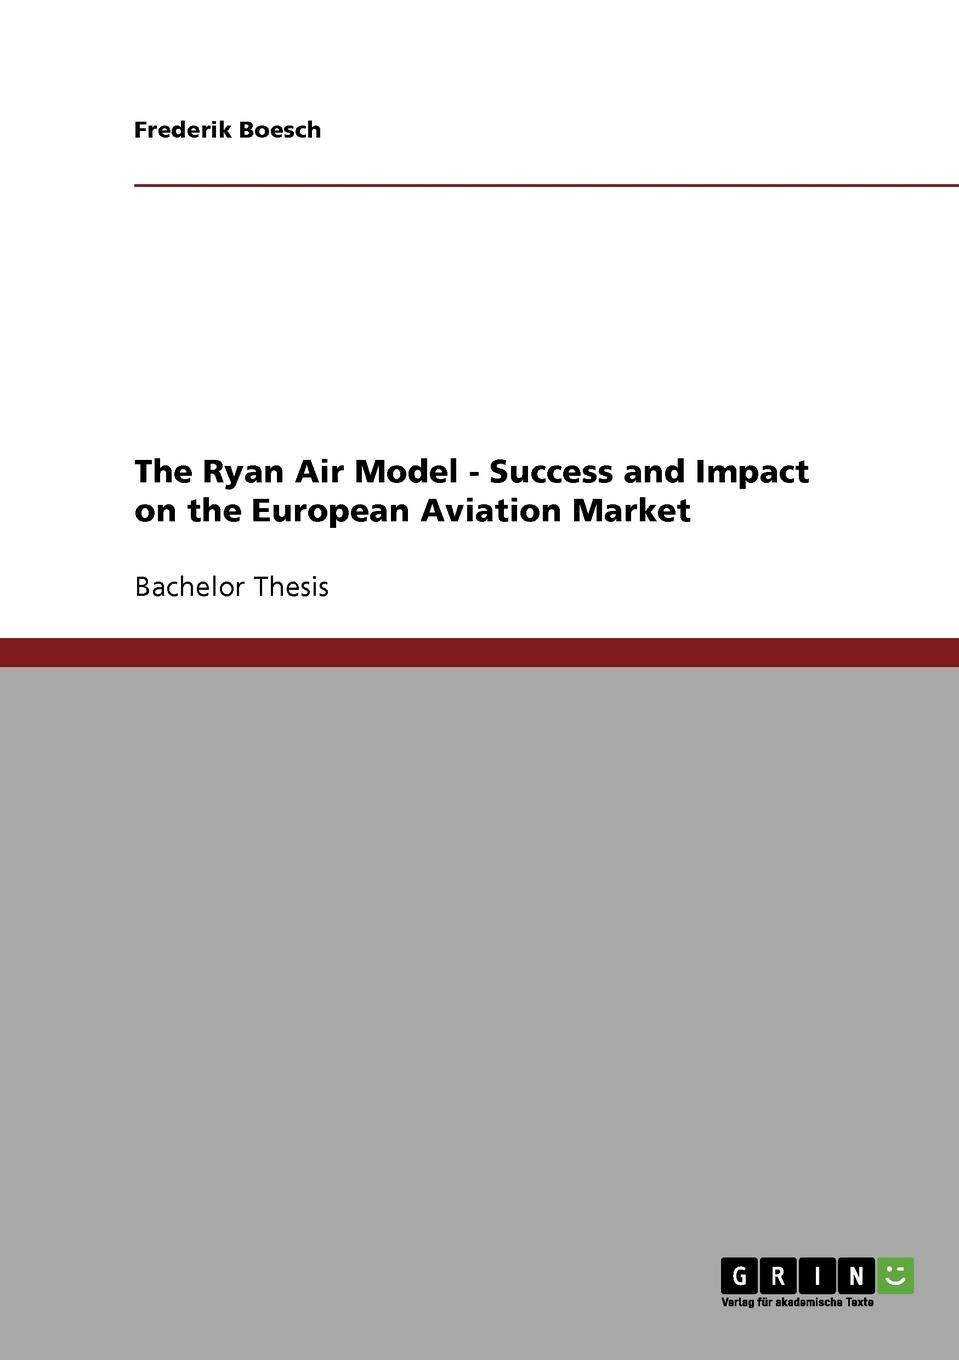 Frederik Boesch The Ryan Air Model - Success and Impact on the European Aviation Market 47cm b777 aircraft model new zealand airlines model air new zealand boeing 777 airplane airways model aviation airbus toys gifts